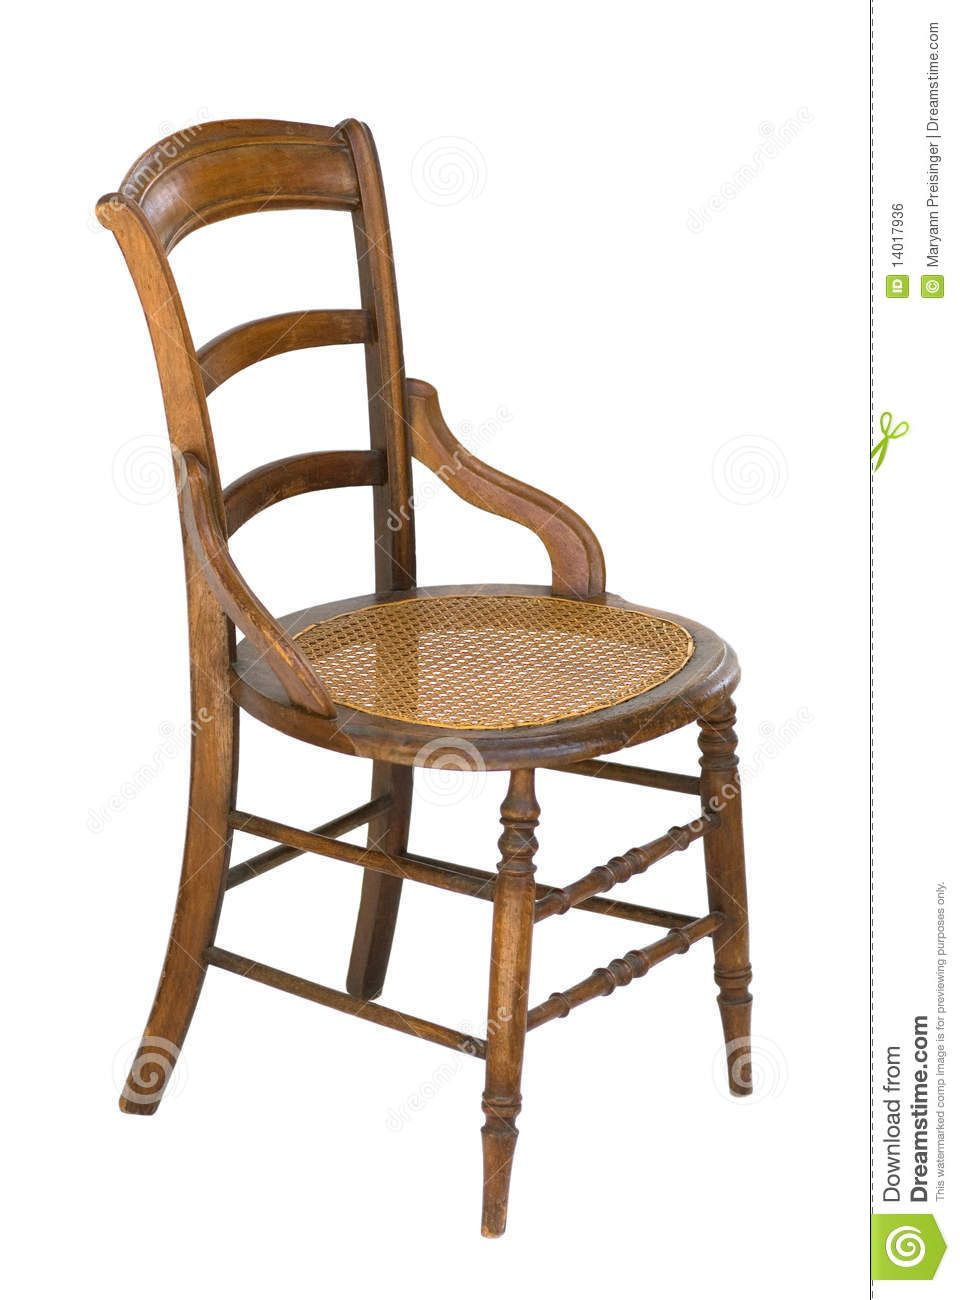 antique+chair | This is an old wood chair with spindles and a cane seat - Antique+chair This Is An Old Wood Chair With Spindles And A Cane